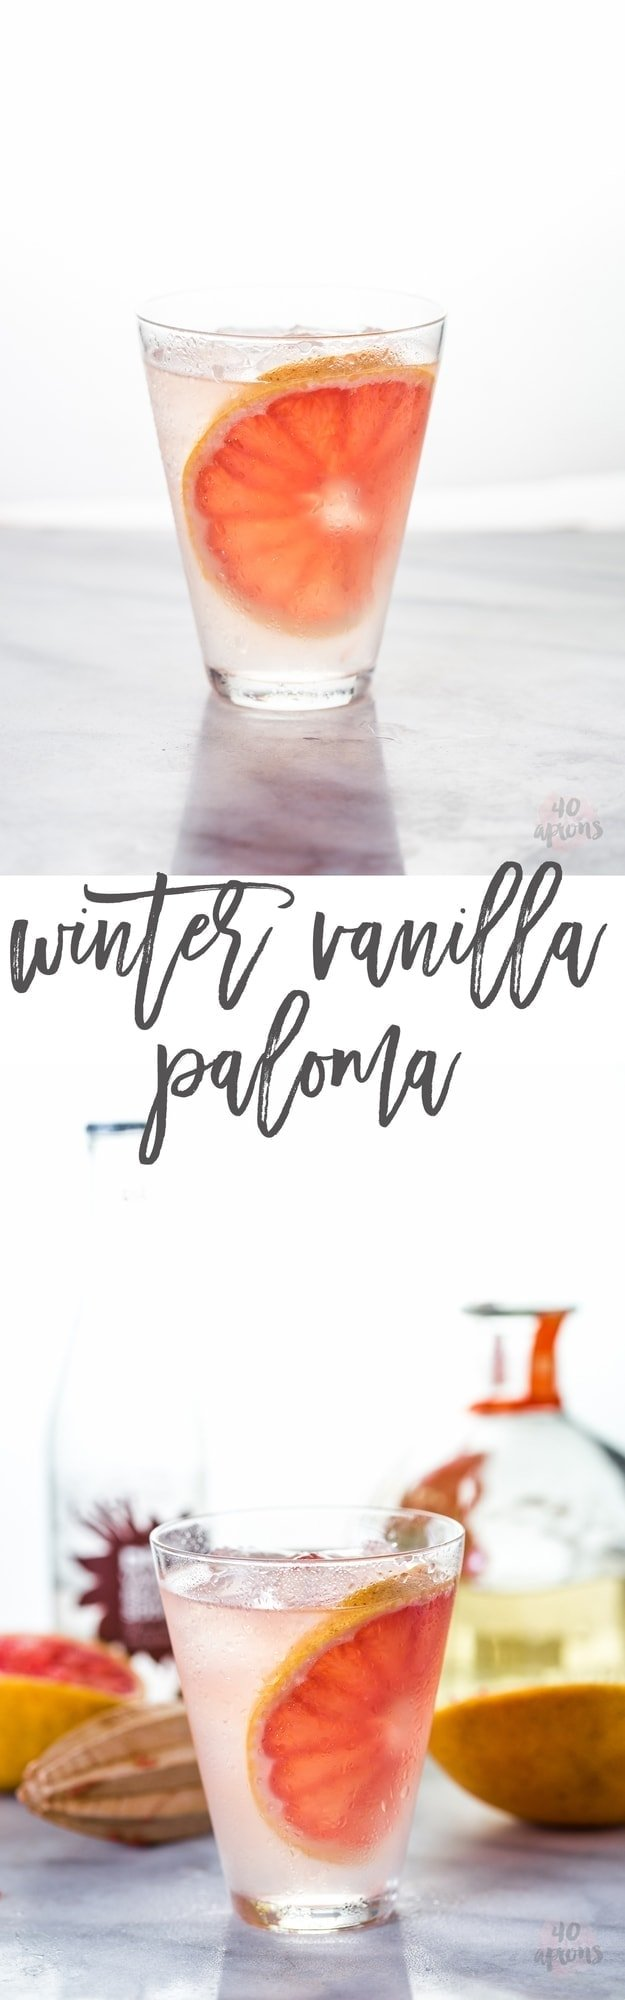 Vanilla Paloma - grapefruit, tequila, Dry Vanilla Soda. Perfectly refreshing and simple with a sweet twist // 40 Aprons